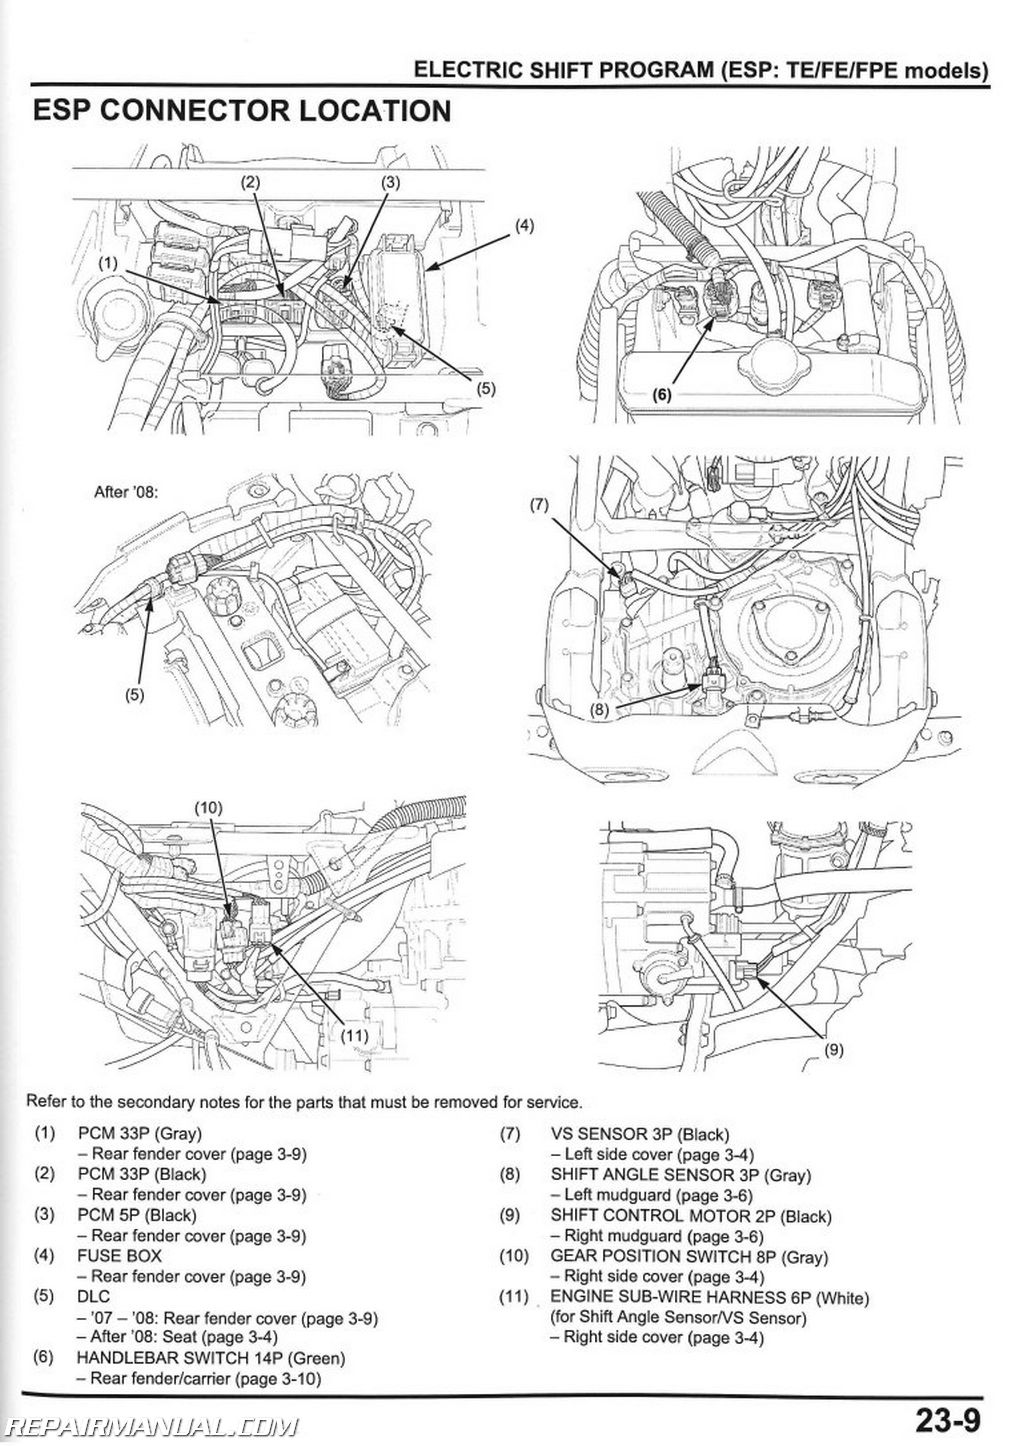 honda foreman 350 wiring diagram honda rancher 420 fuel pump honda free engine image for 2012 honda foreman atv wiring diagram #8